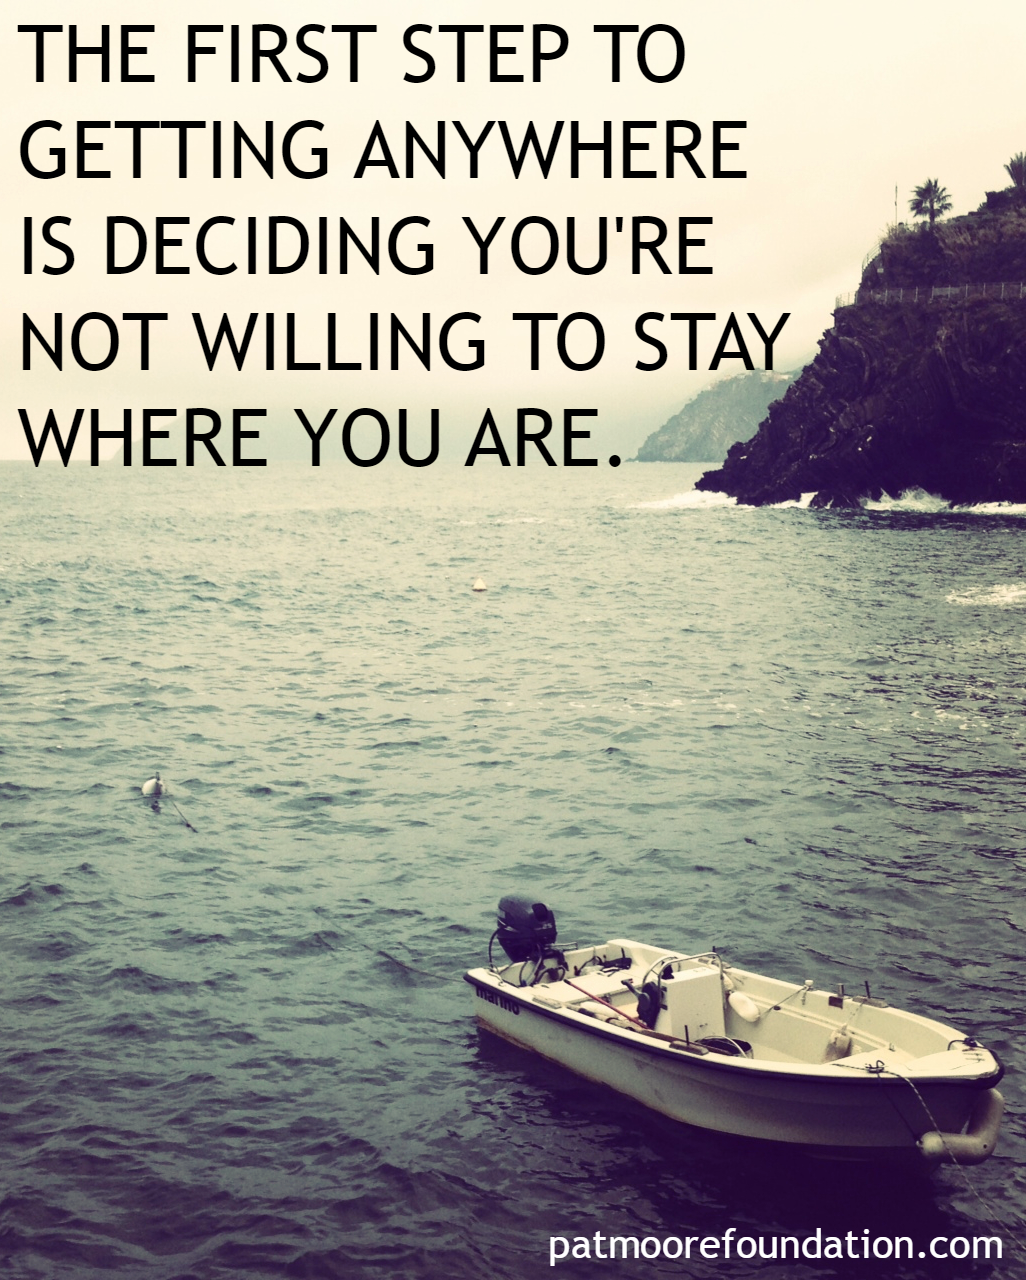 Inspirational Quotes On Pinterest: The First Step To Getting Anywhere Is Deciding You're Not